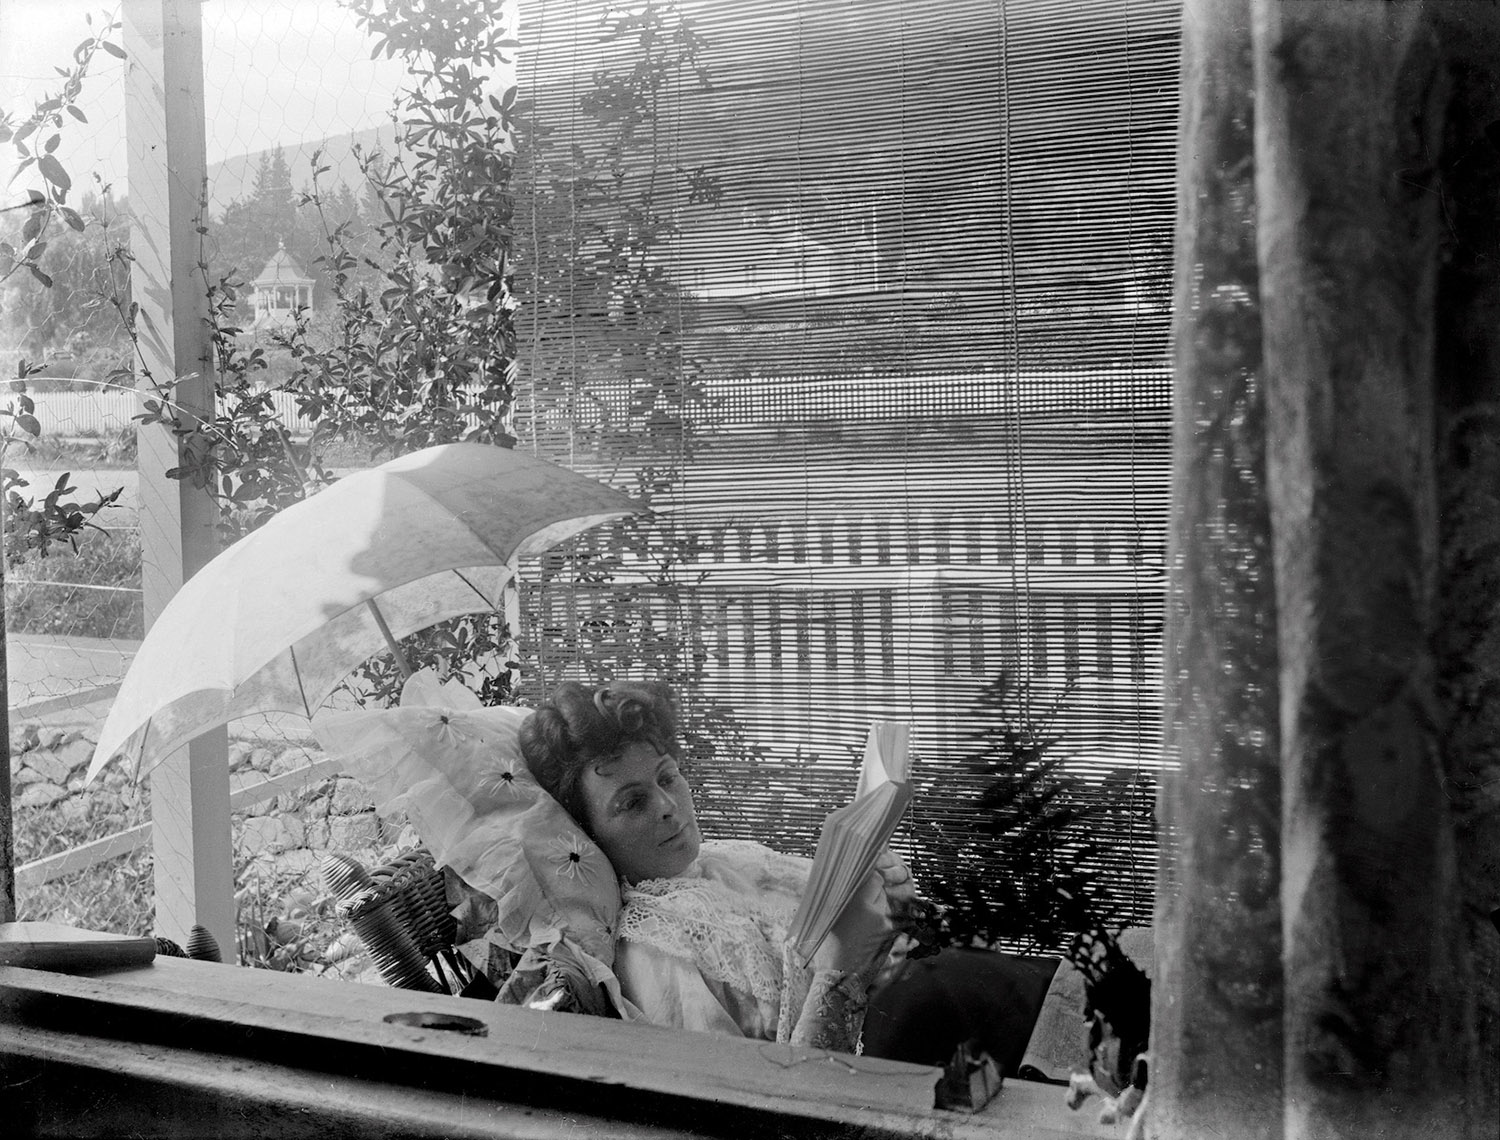 Woman relaxing with a book, Te Aroha, New Zealand, circa 1907-1911. Lemuel Lyes Collection.